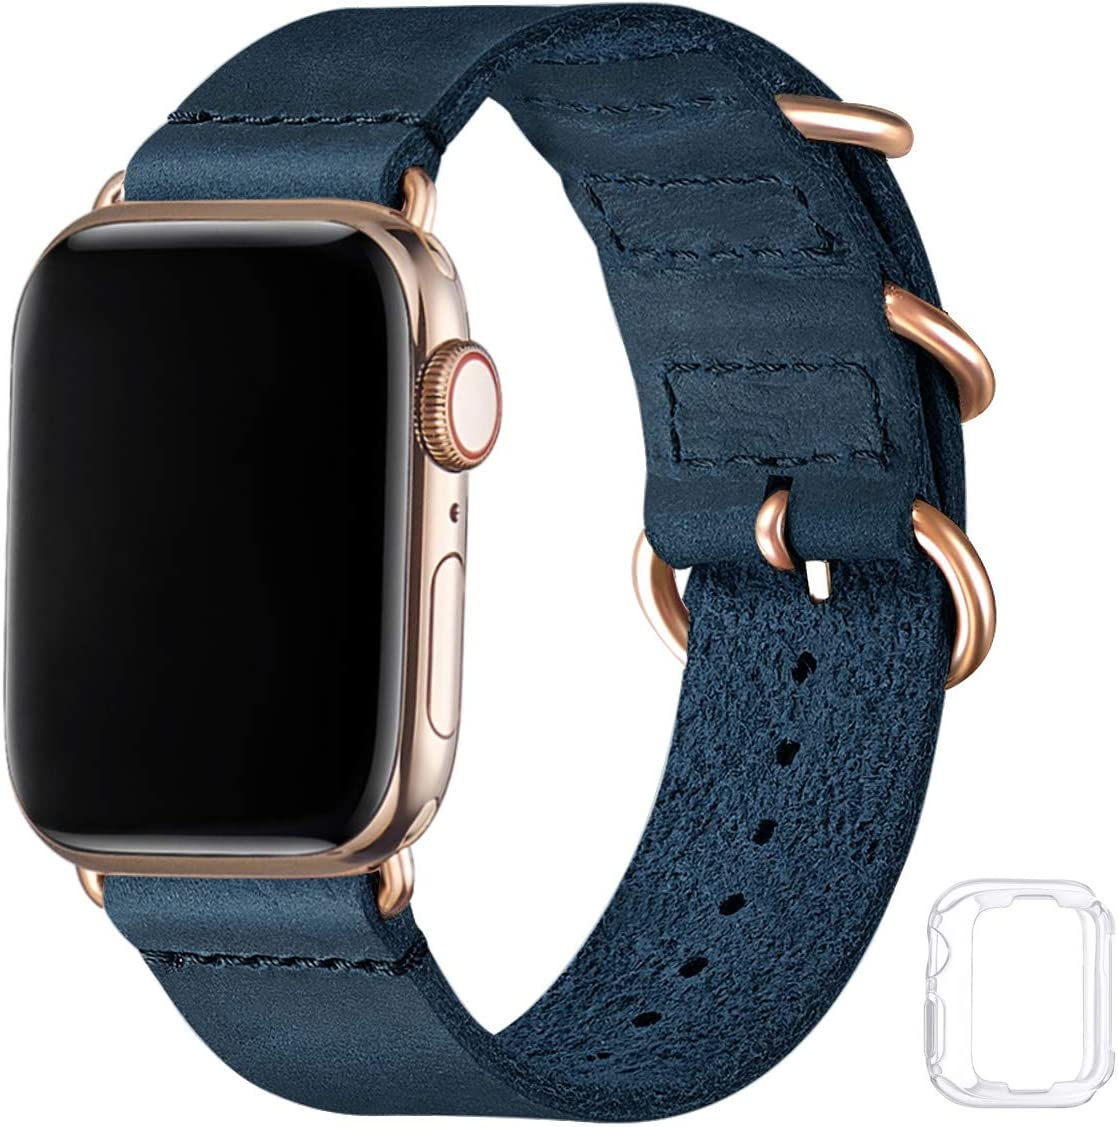 Vintage Leather Bands Compatible with Apple Watch Band 38mm 40mm 42mm 44mm,Genuine Leather Retro Strap Compatible for Men Women iWatch SE Series 6/5/4/3/2/1(Army Blue+Gold Connector, 42mm 44mm)